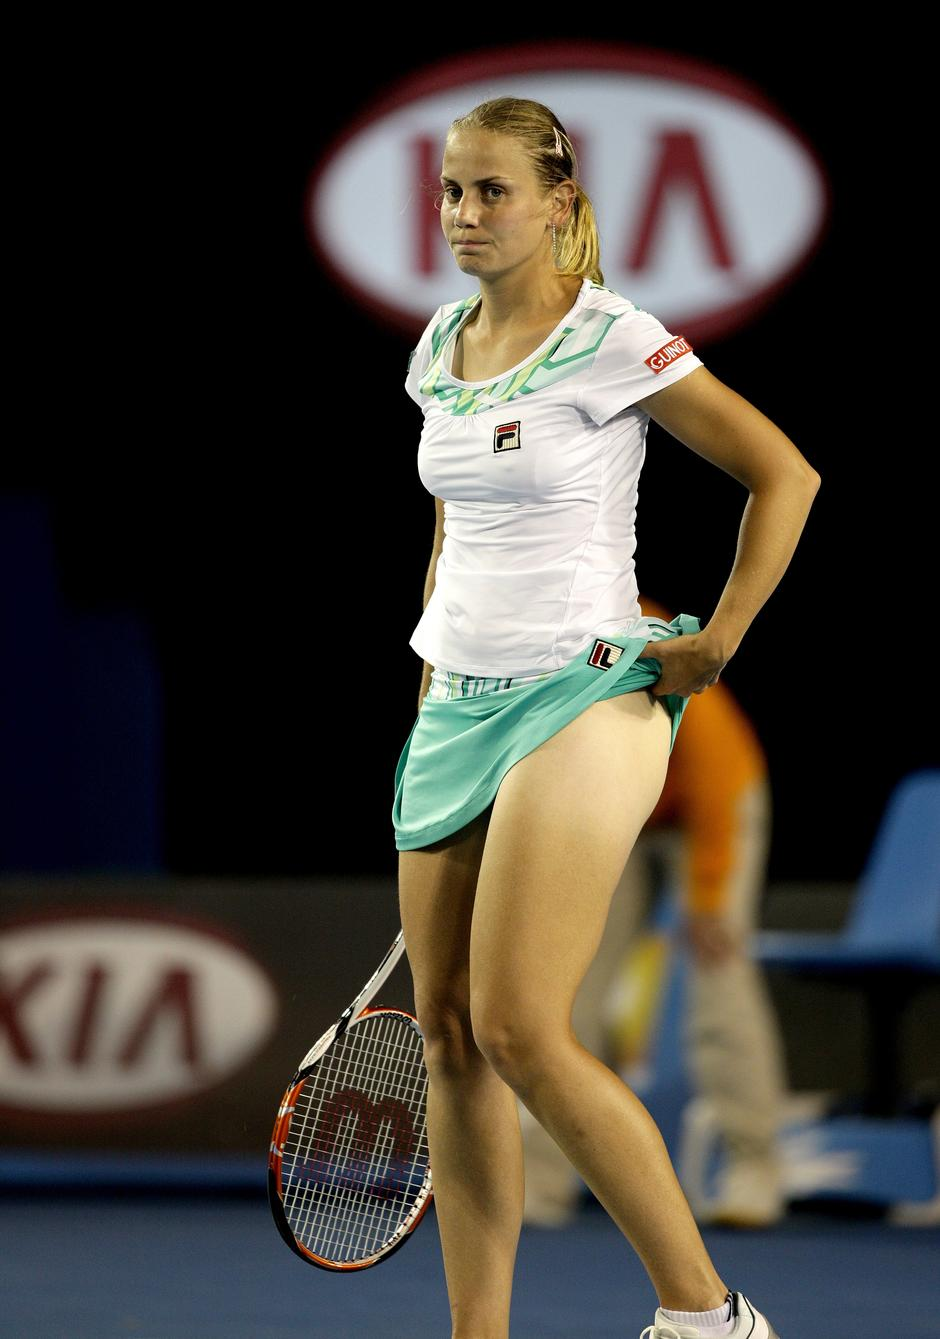 Tennis - Australian Open 2009 - Day 3 - Melbourne & Olympic Parks | Autor: Grant Treeby/Press Association/PIXSELL